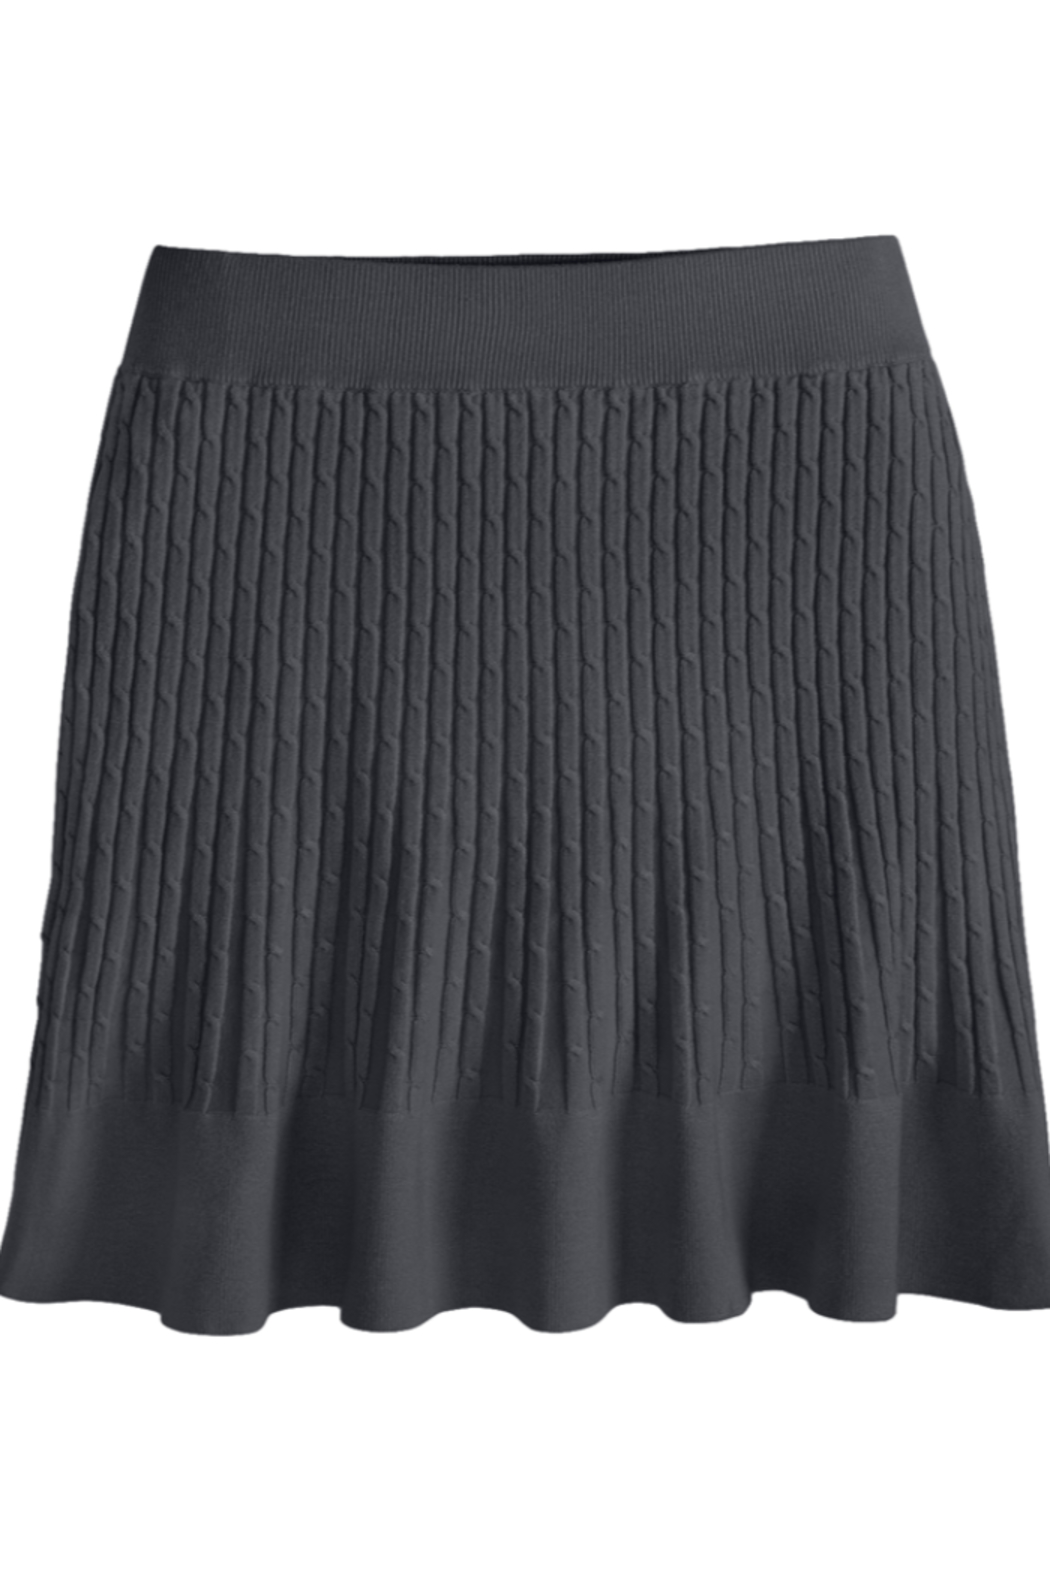 525 America Cable Skirt - Main Image